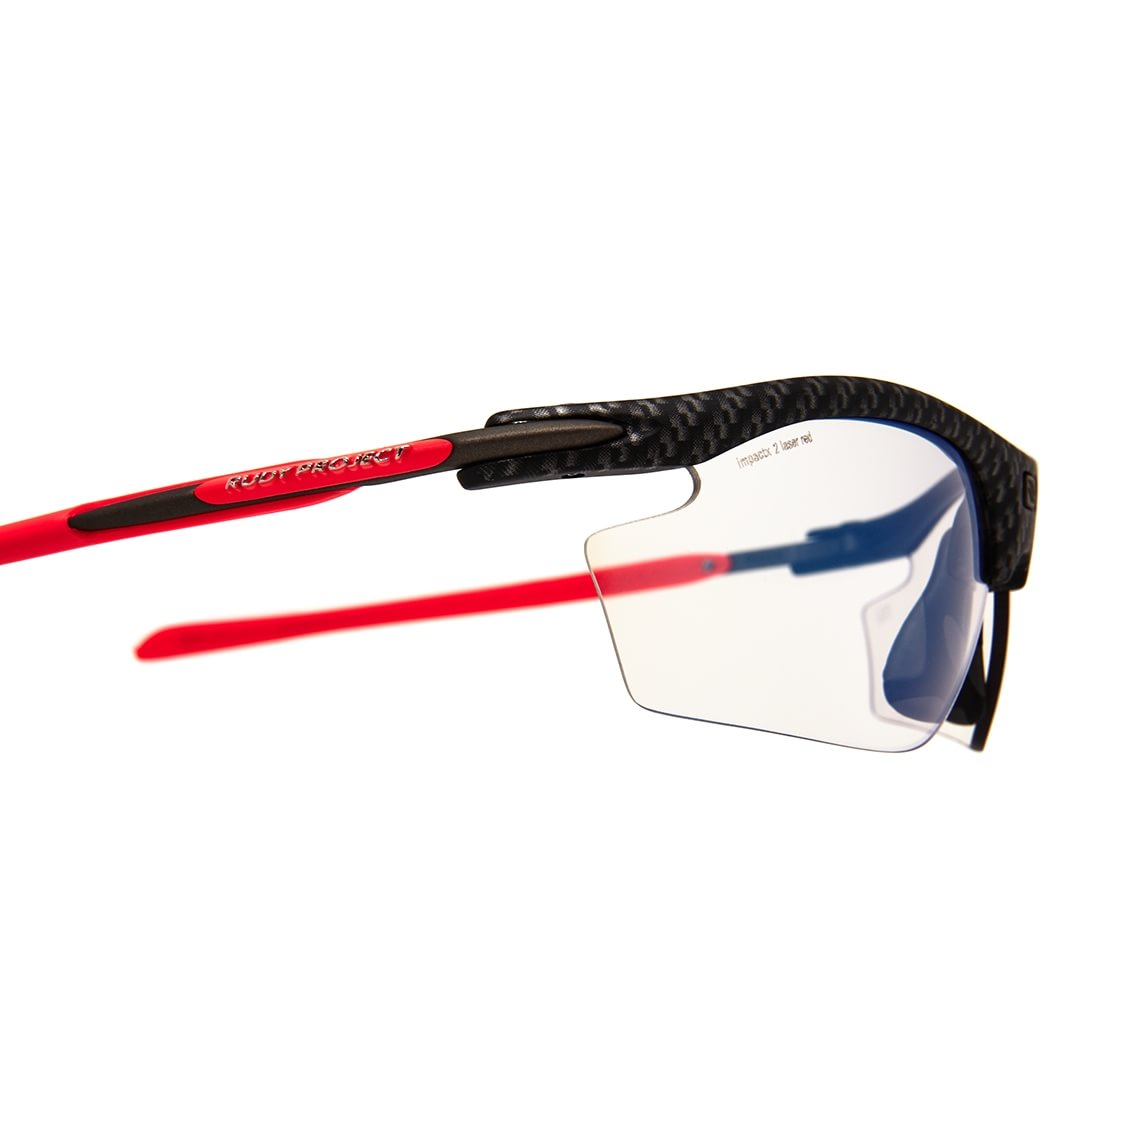 Rudy Project Rydon Carbon ImpactX Photochromic 2 Laser Red SP538919-0